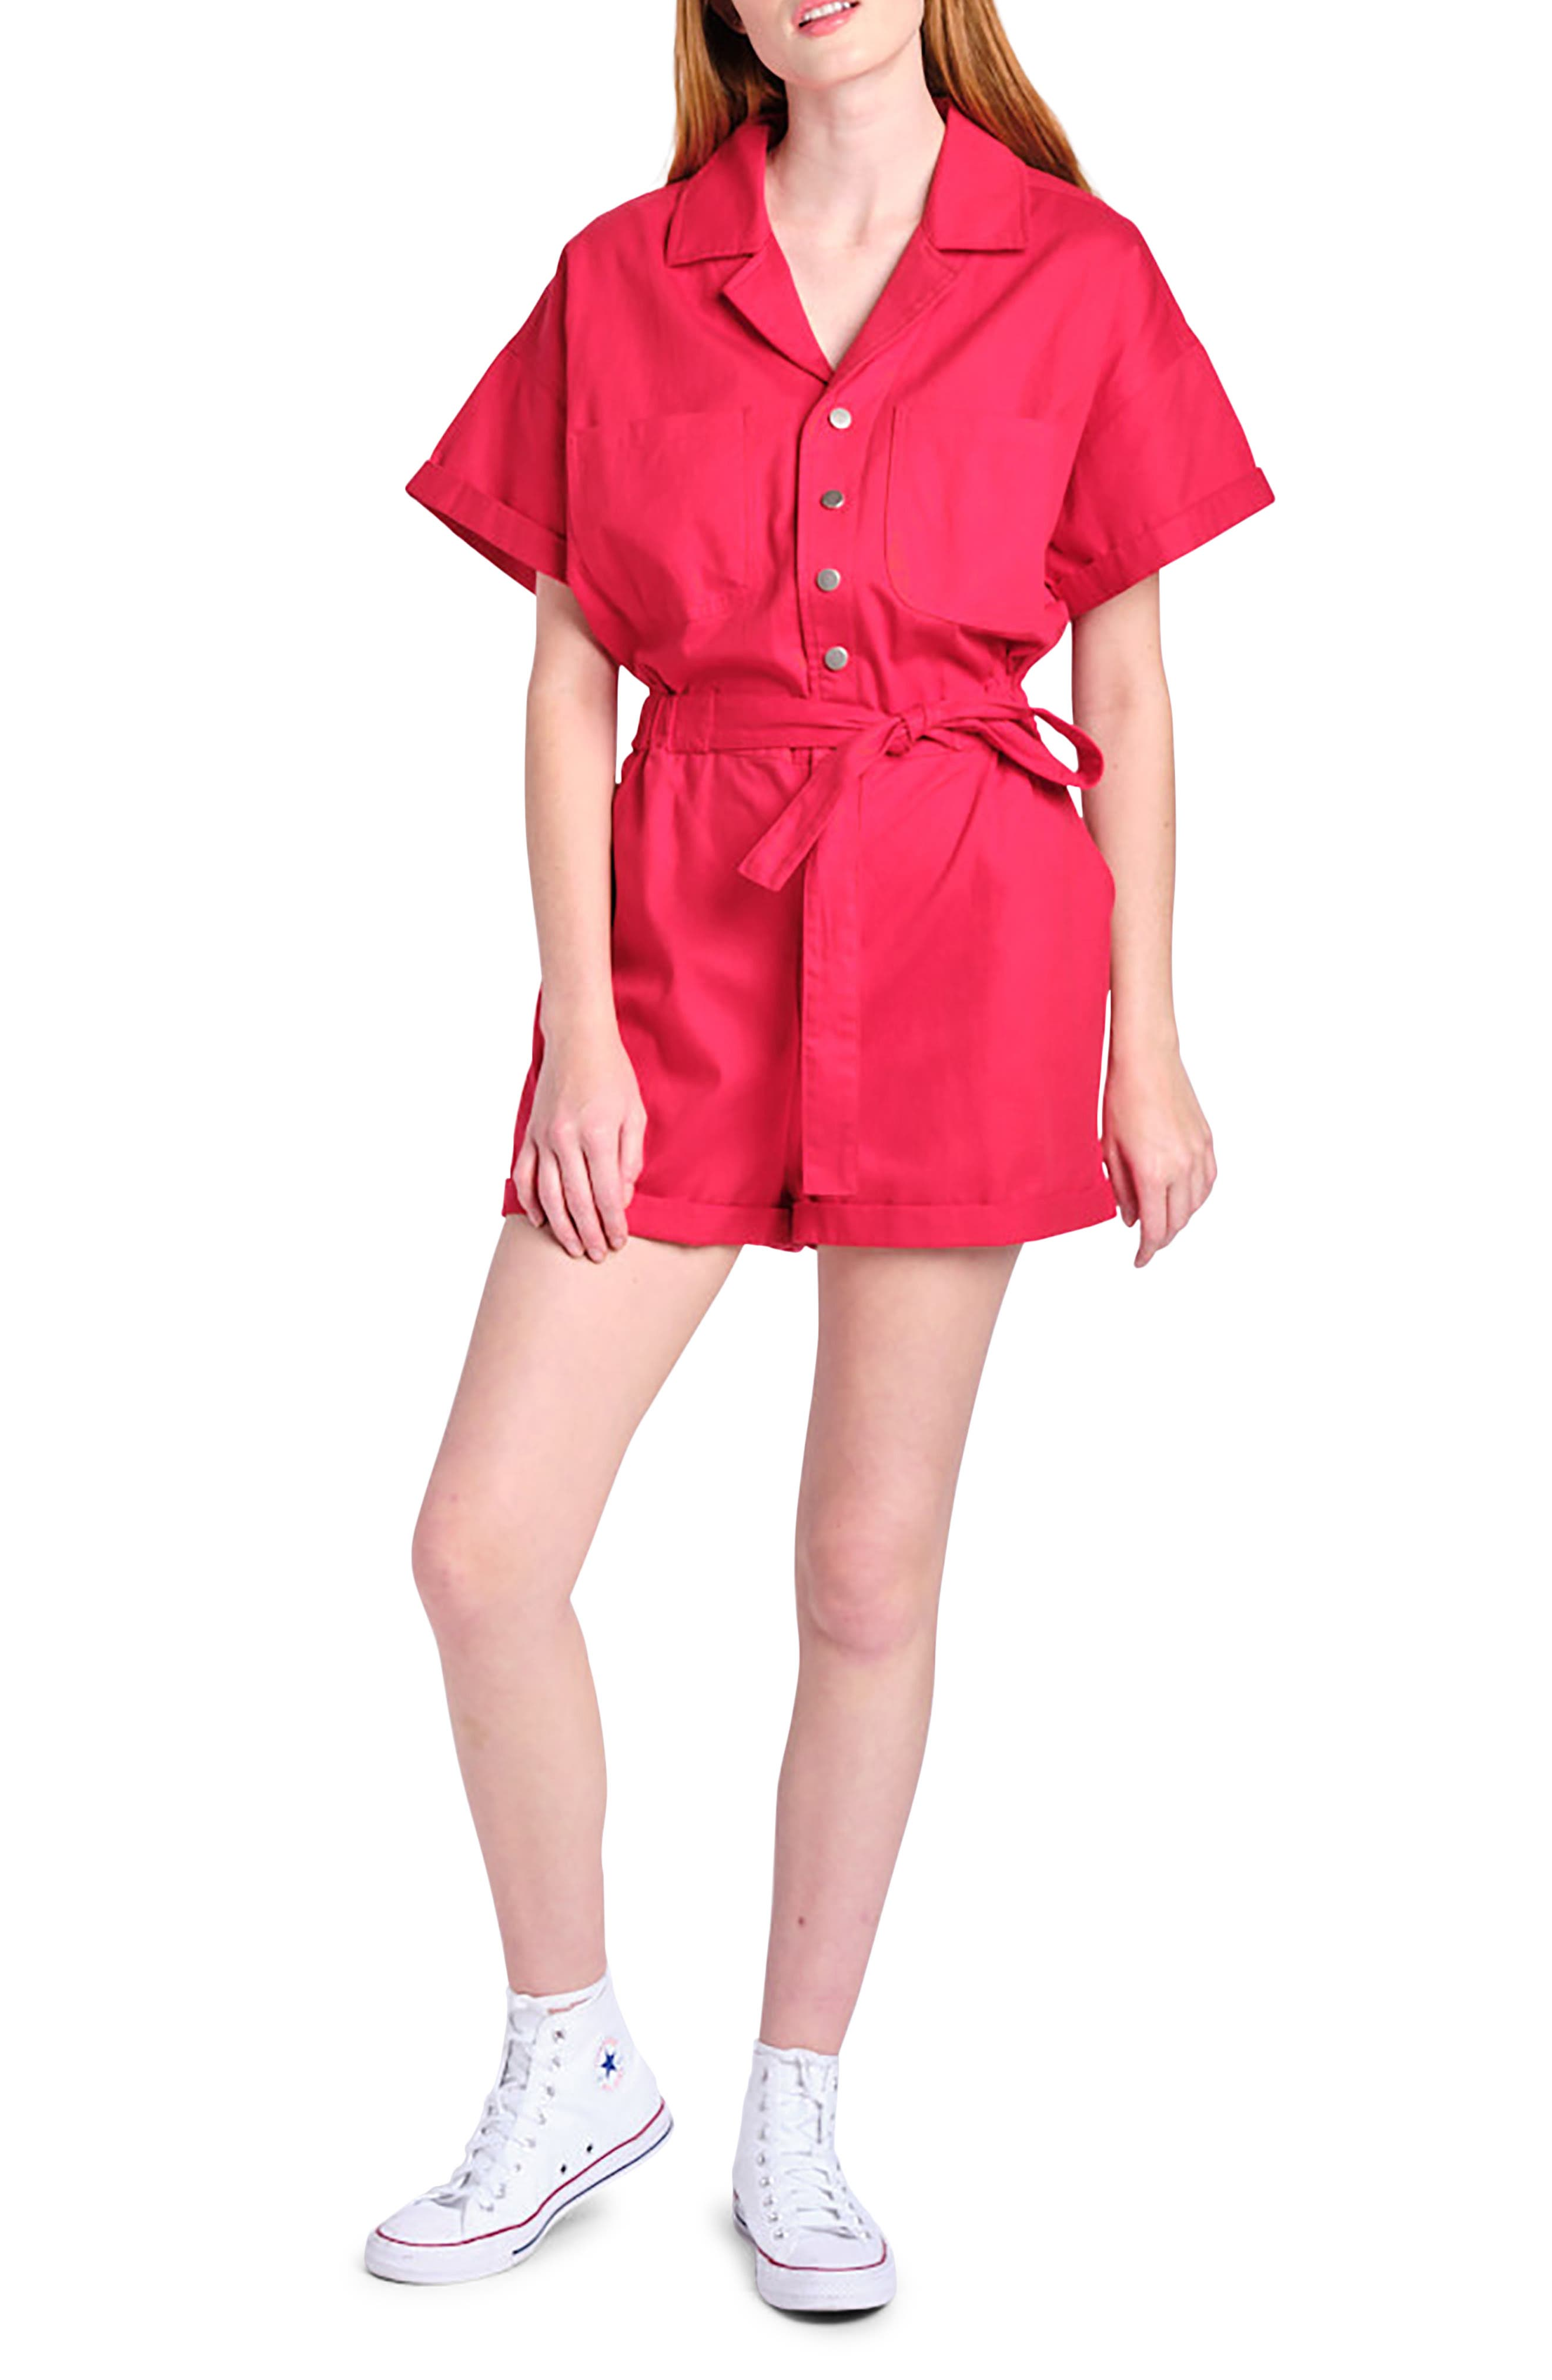 70s Workout Clothes | 80s Tracksuits, Running Shorts, Leotards Womens En Saison Cotton Utility Romper Size X-Small - Red $88.00 AT vintagedancer.com